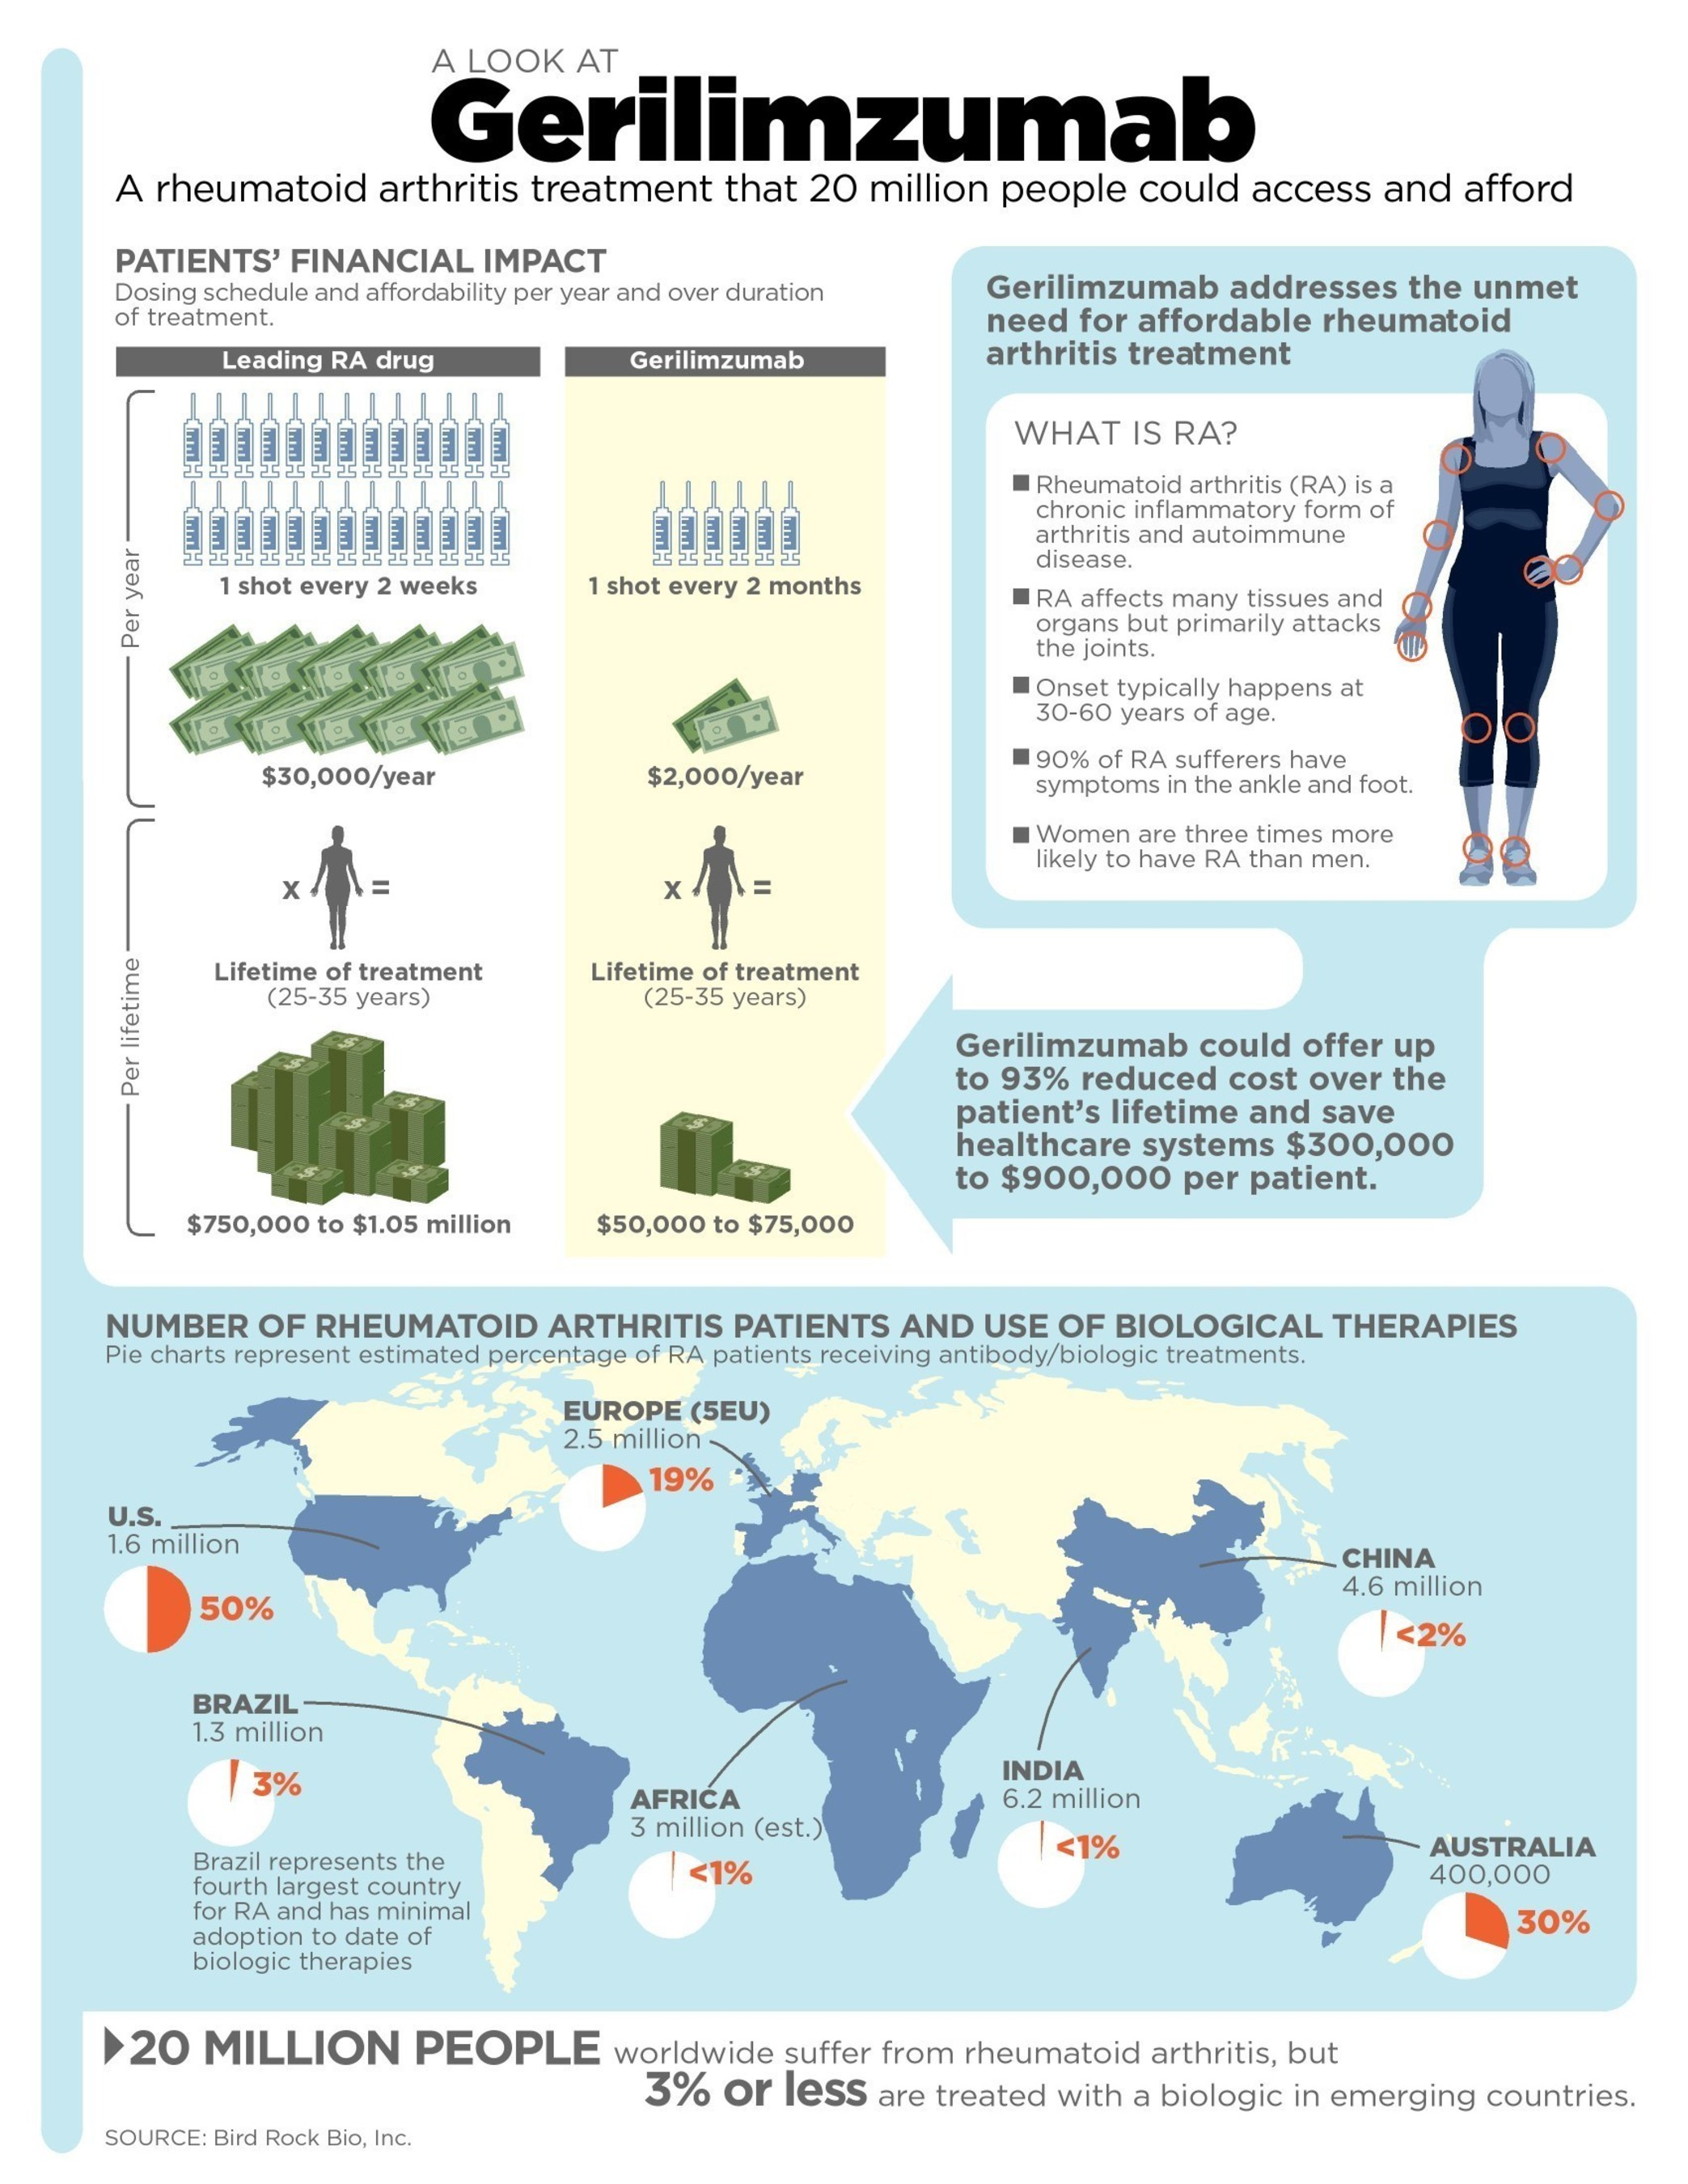 Worldwide, healthcare systems are seeking to provide the best treatments while managing costs. Annually, $35 billion is spent on rheumatoid arthritis (RA) biologic therapeutics, costing up to $40,000 per patient, per year, and requiring frequent dosing. Today's report of clinical data on gerilimzumab supports dosing every other month and a price as low as $2,000 per patient, per year, representing an opportunity to significantly expand global access to a best-in-class therapy for 20 million RA patients.